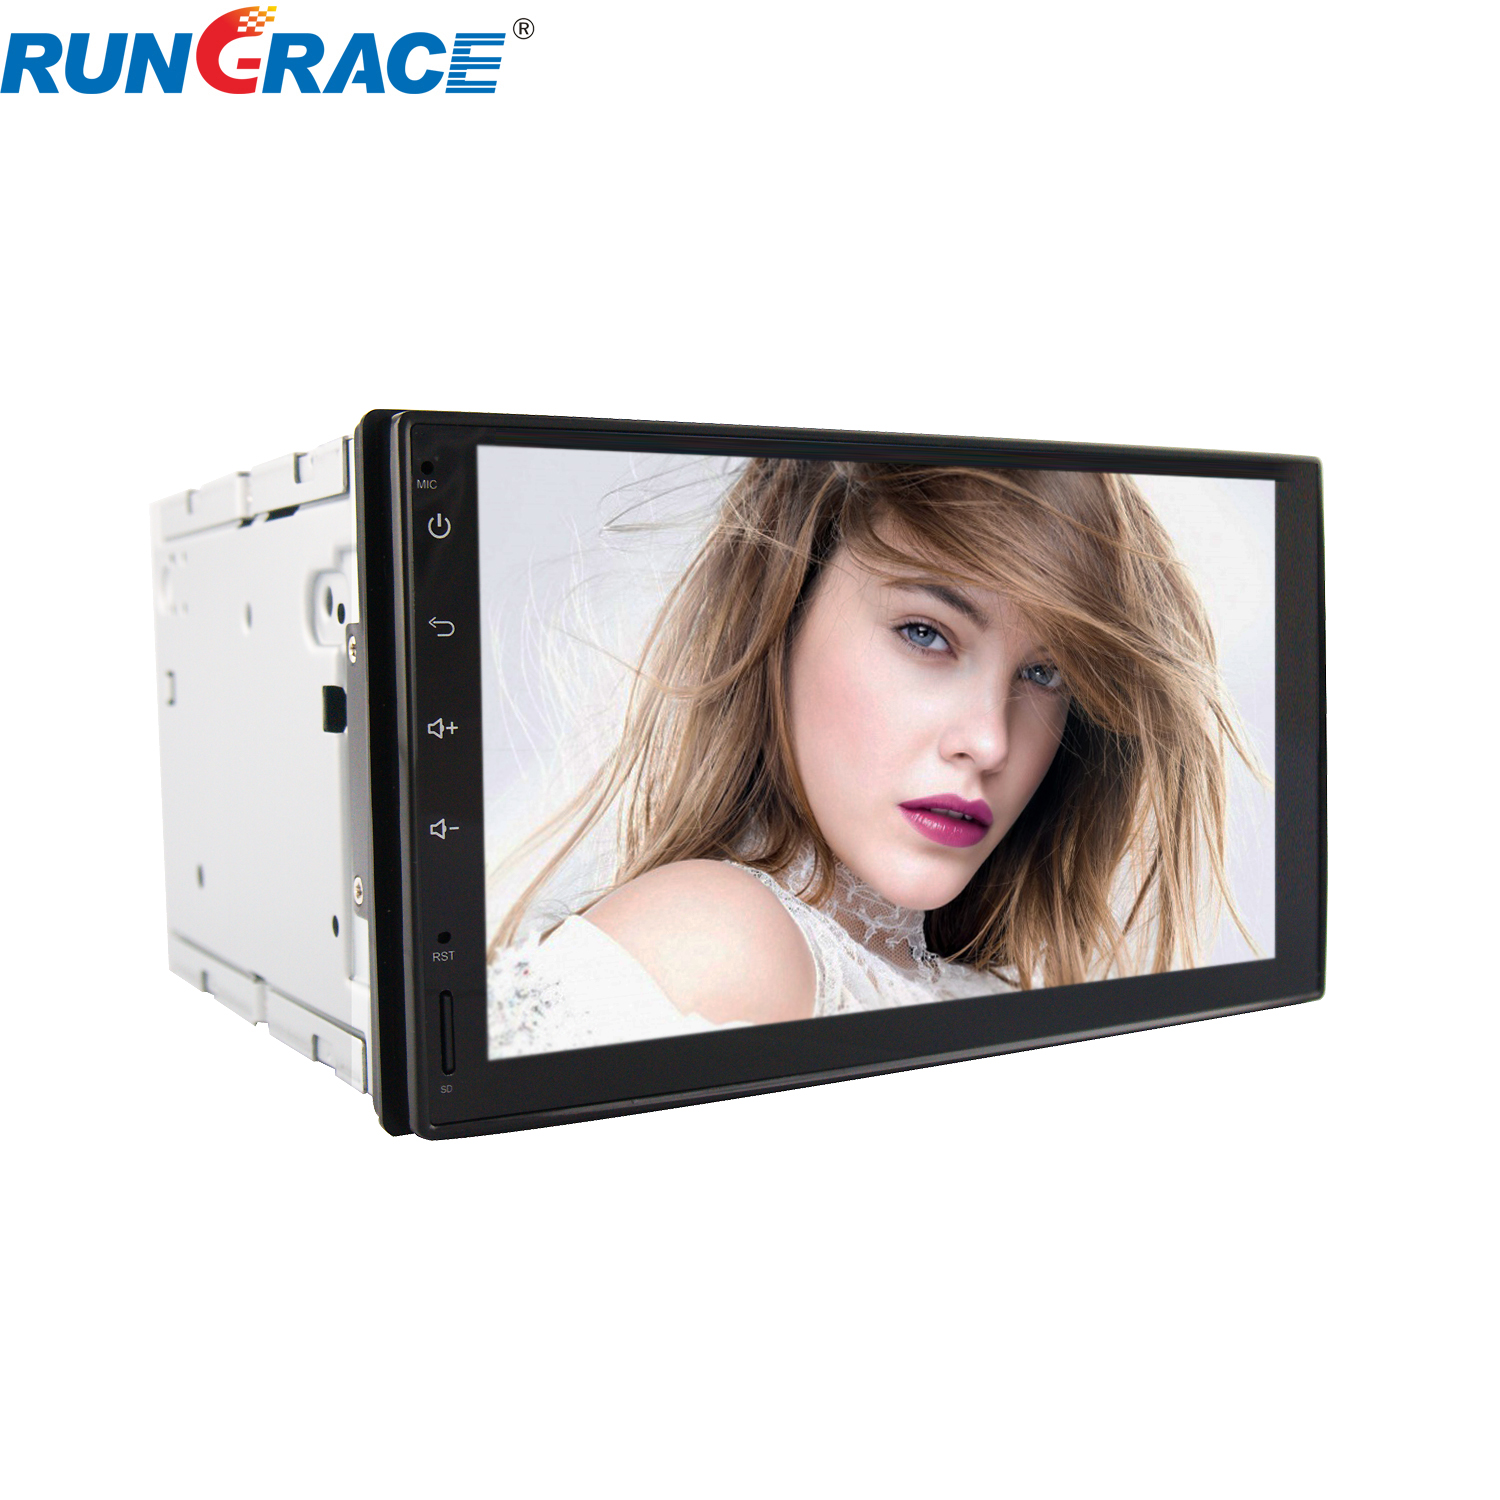 Rungrace China supplier universal car dvd gps navigation system bluetooth reverse camera